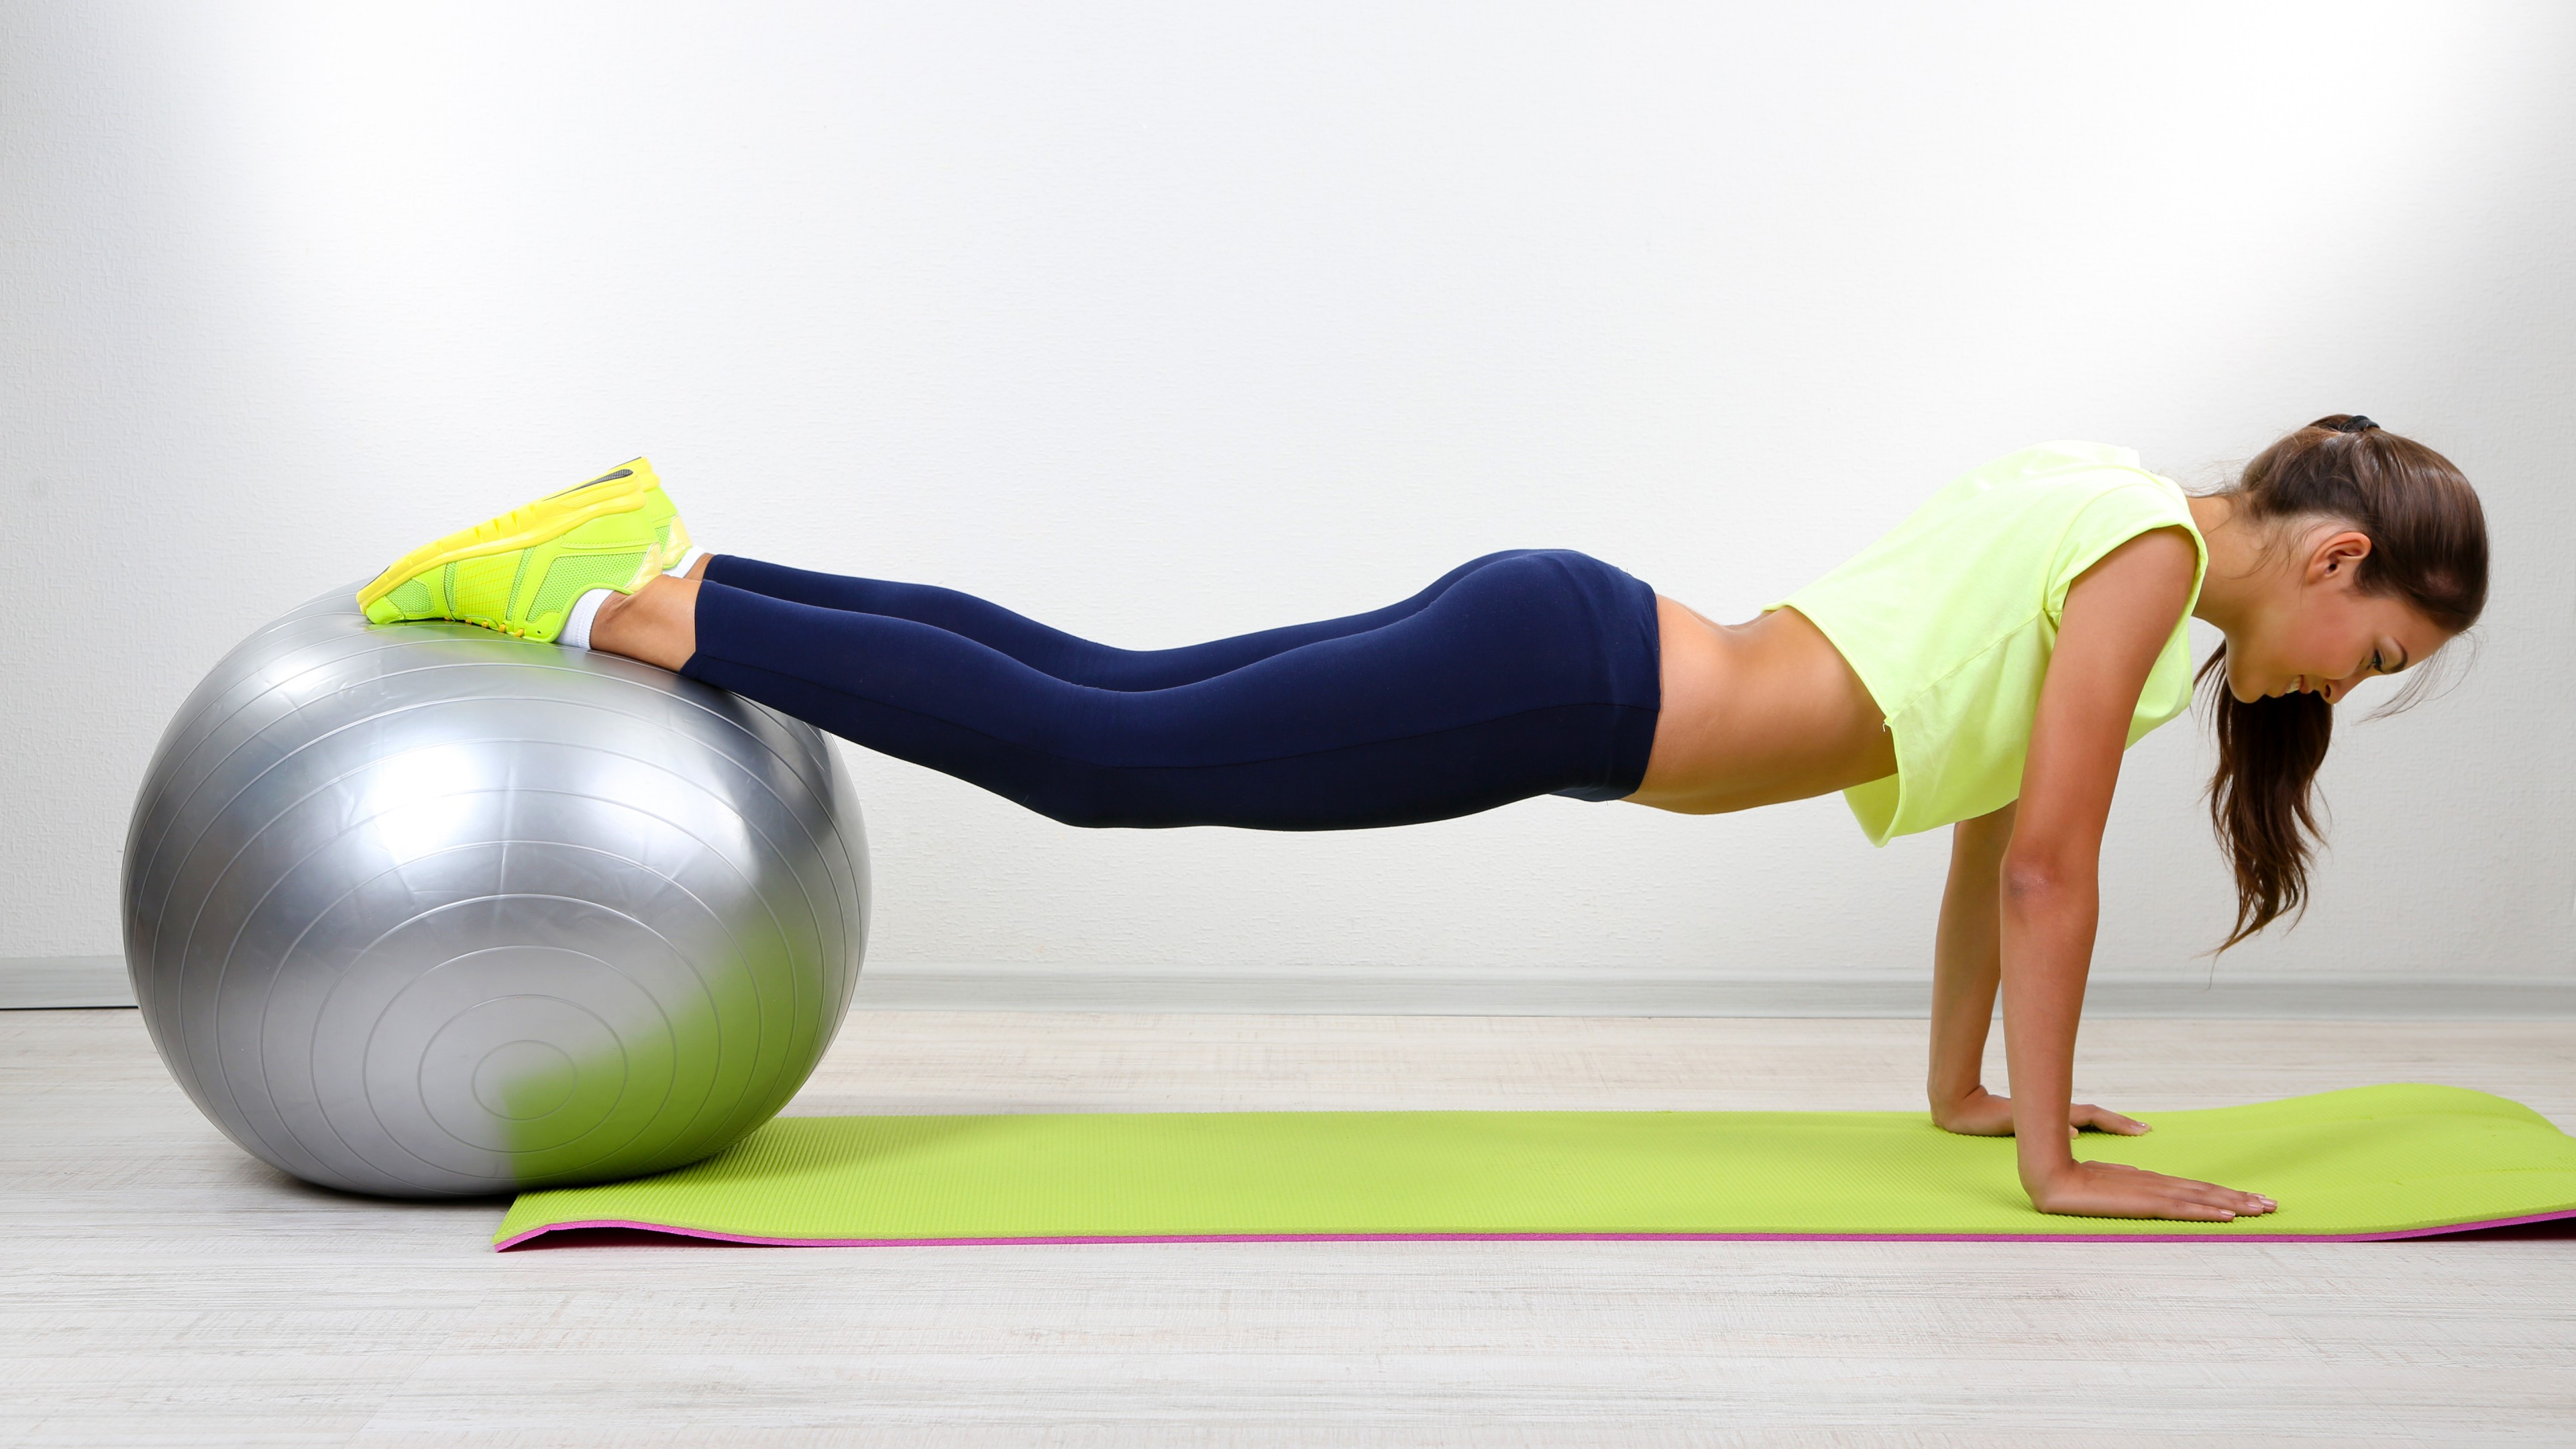 Sport Wallpaper Gym: Wallpaper Girl, Training, Exercise, Weight Loss, Gym Ball